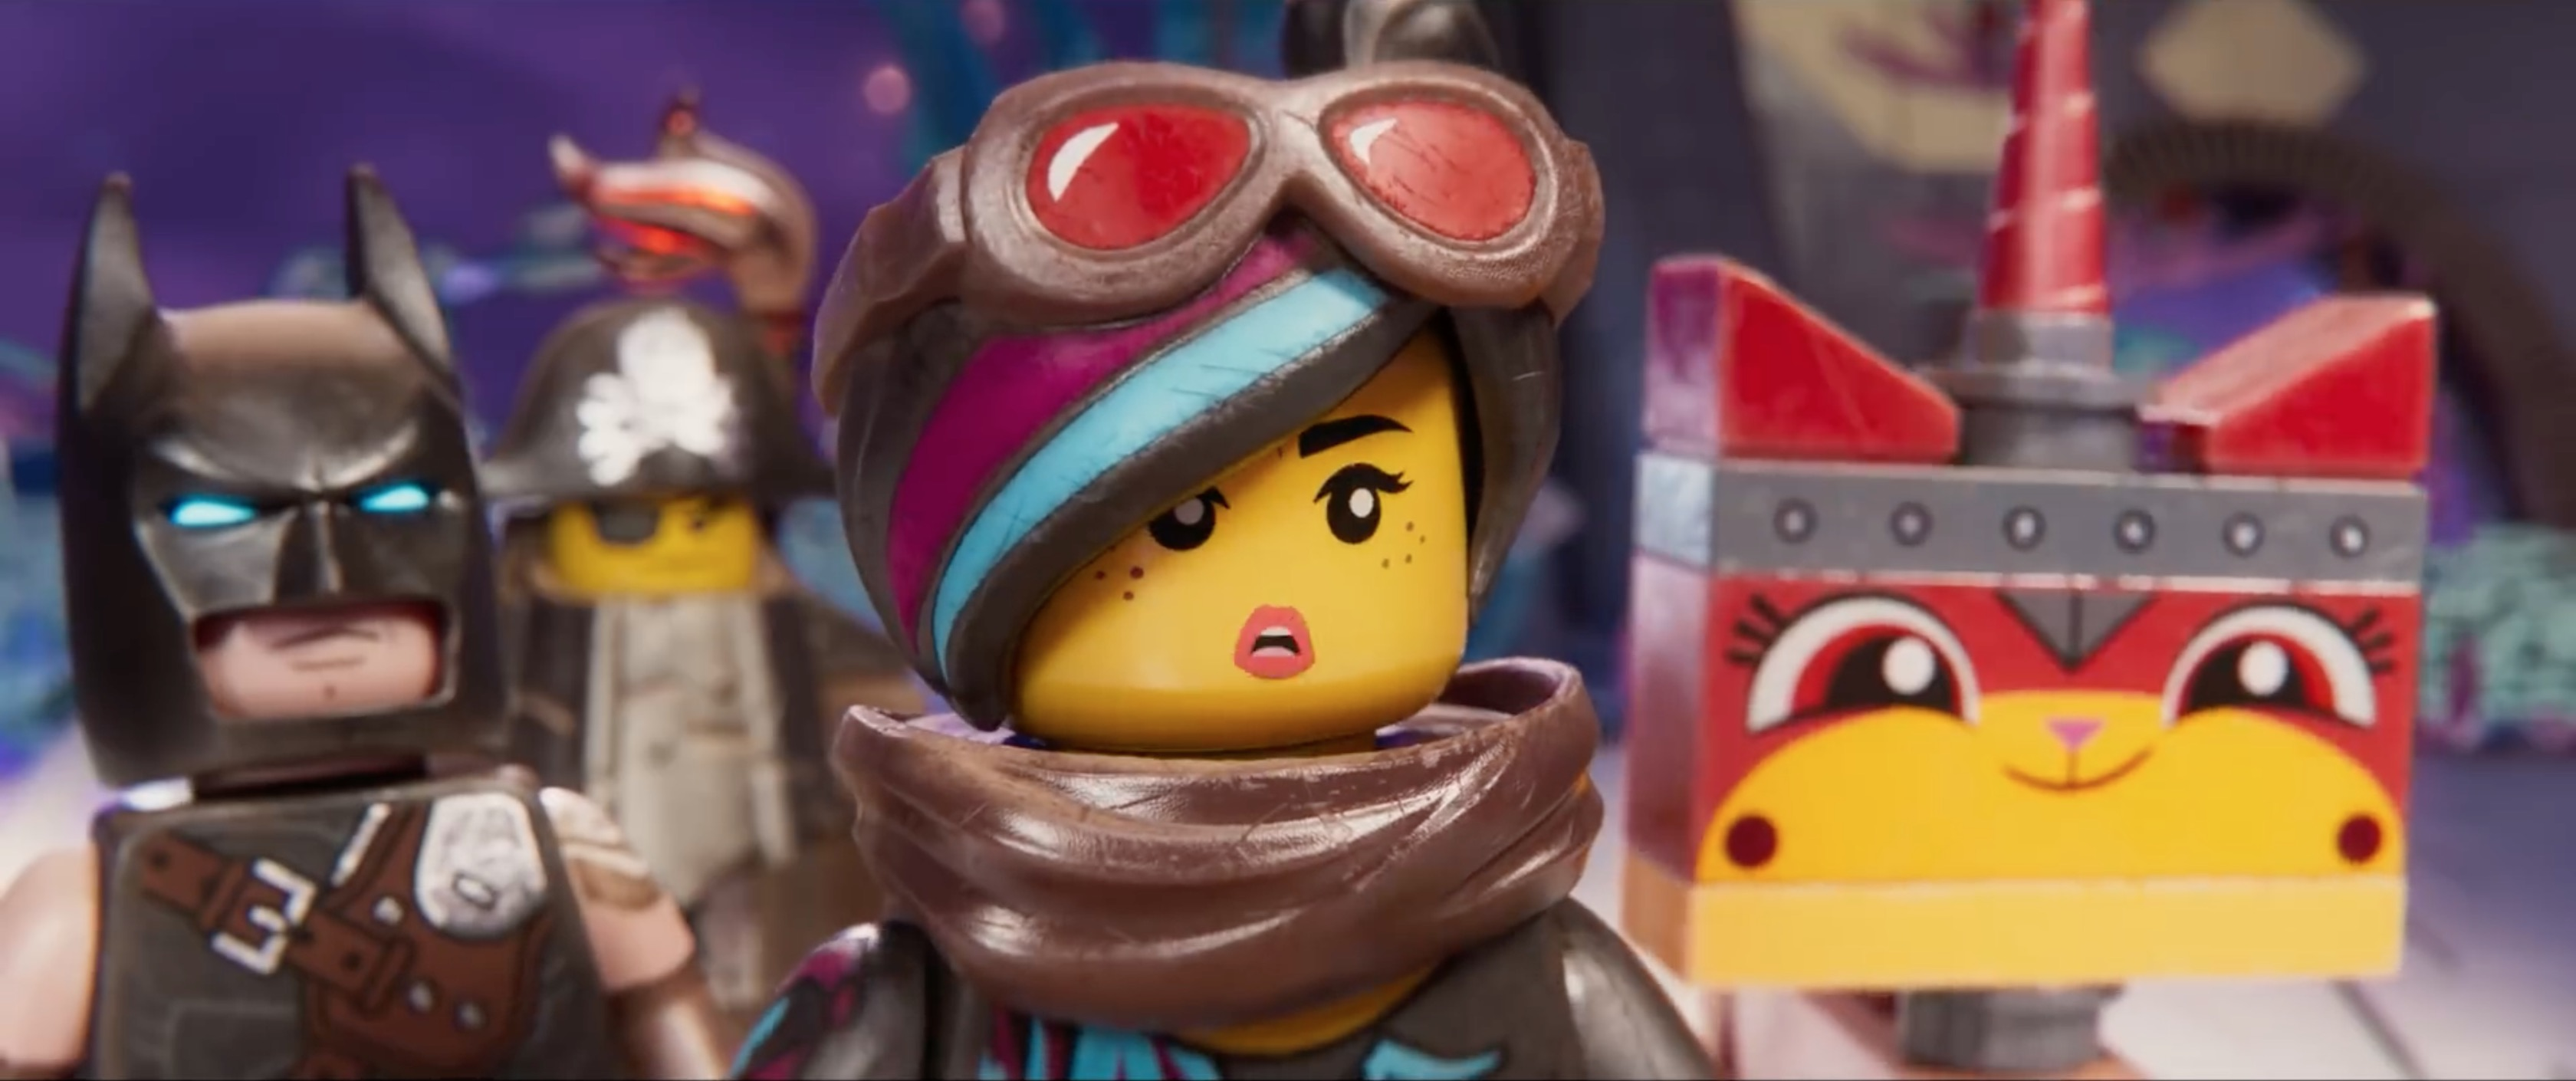 The LEGO Movie 2 New Official Trailer